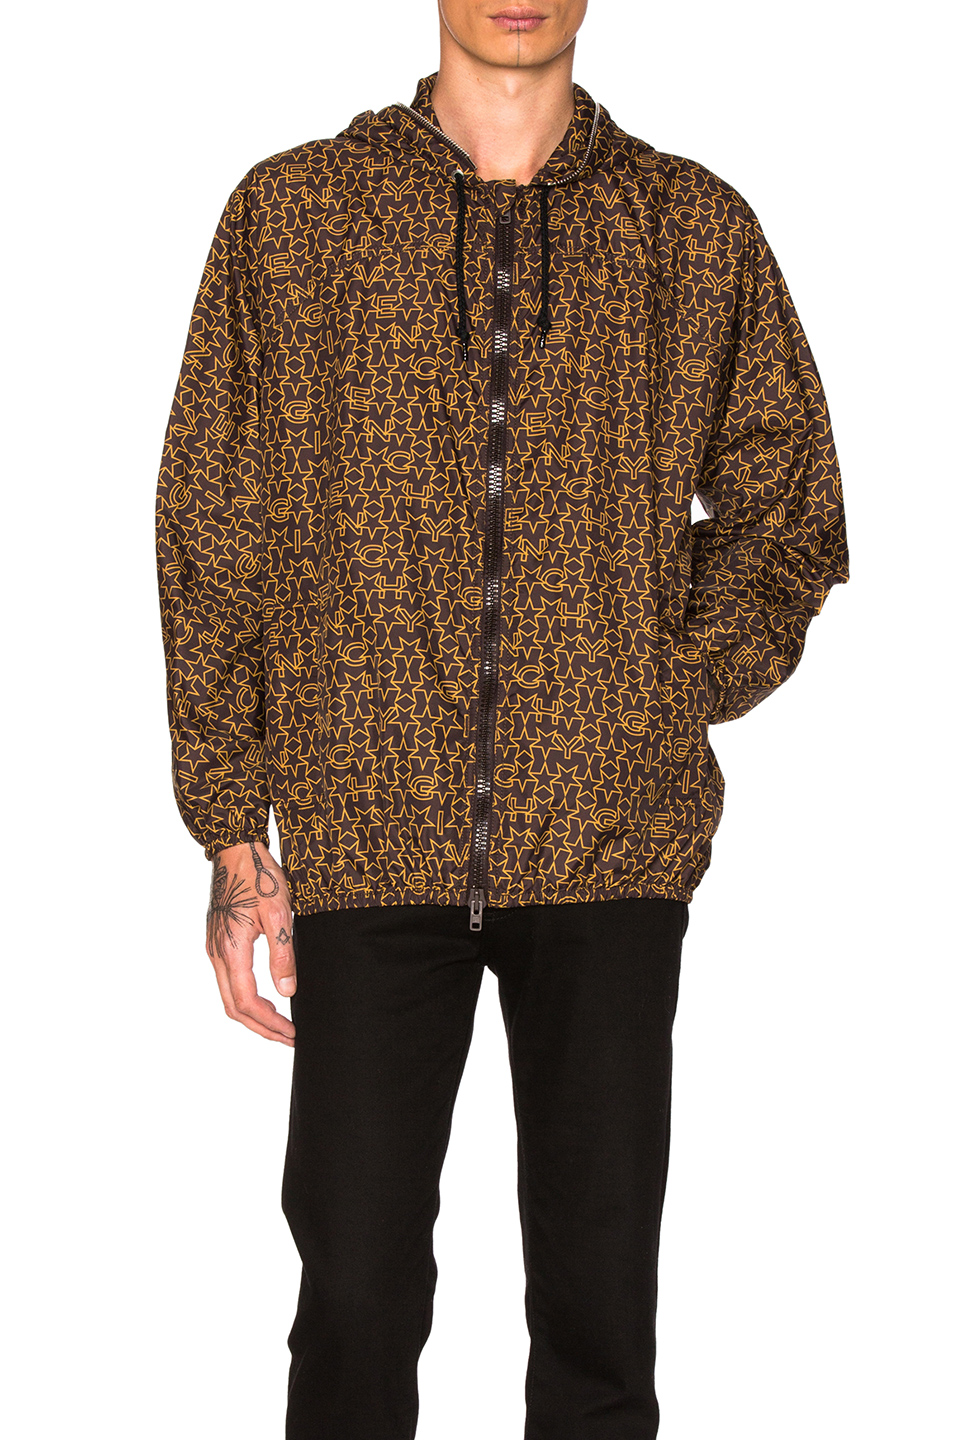 Givenchy Printed Lightweight Jacket in Abstract,Brown,Geometric Print,Yellow